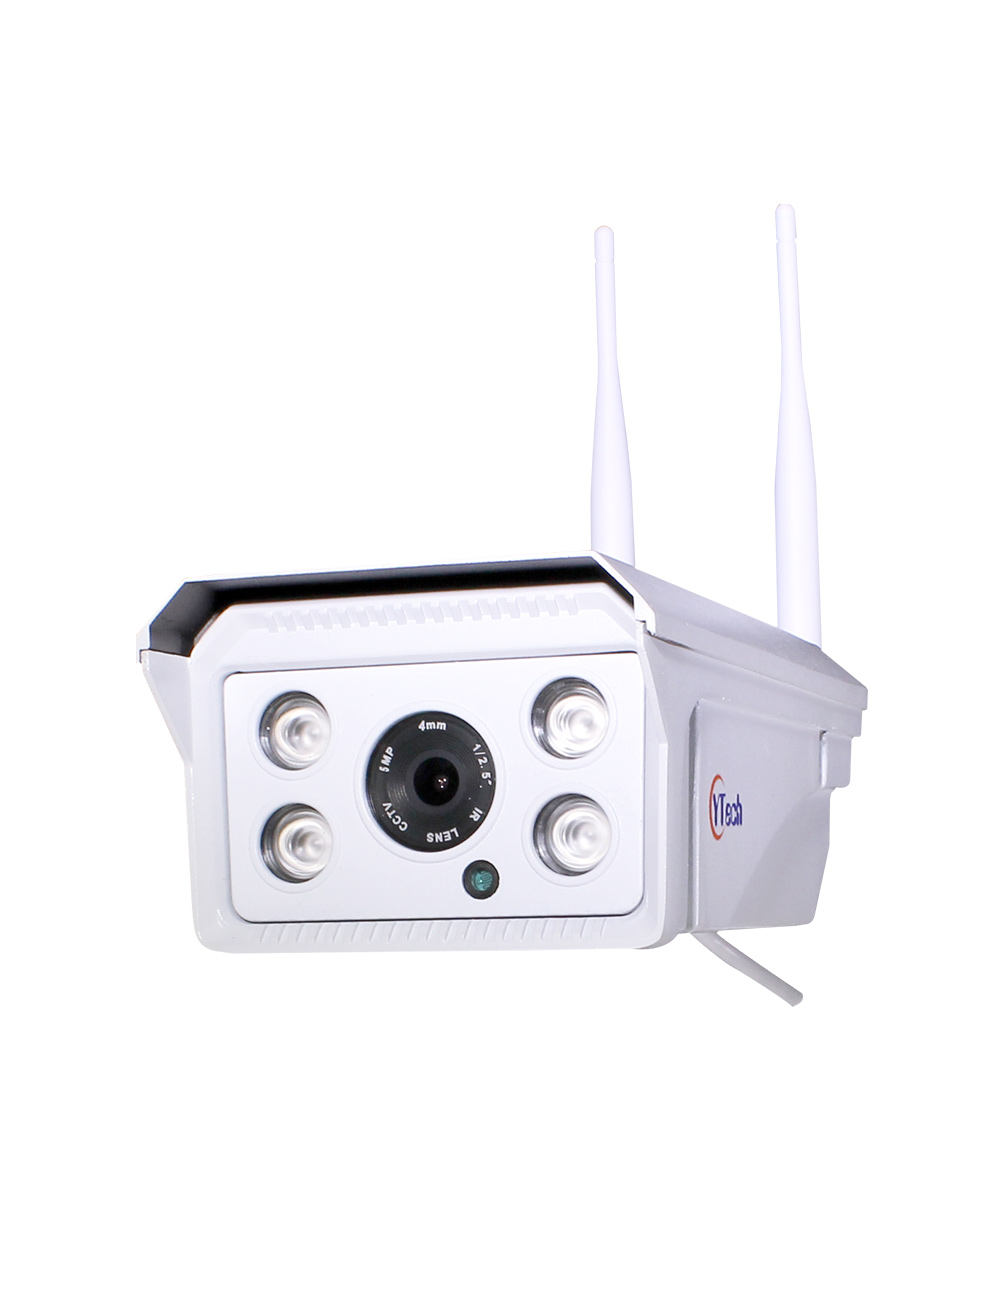 WBL4 Series IR Waterproof WIFI Cameras